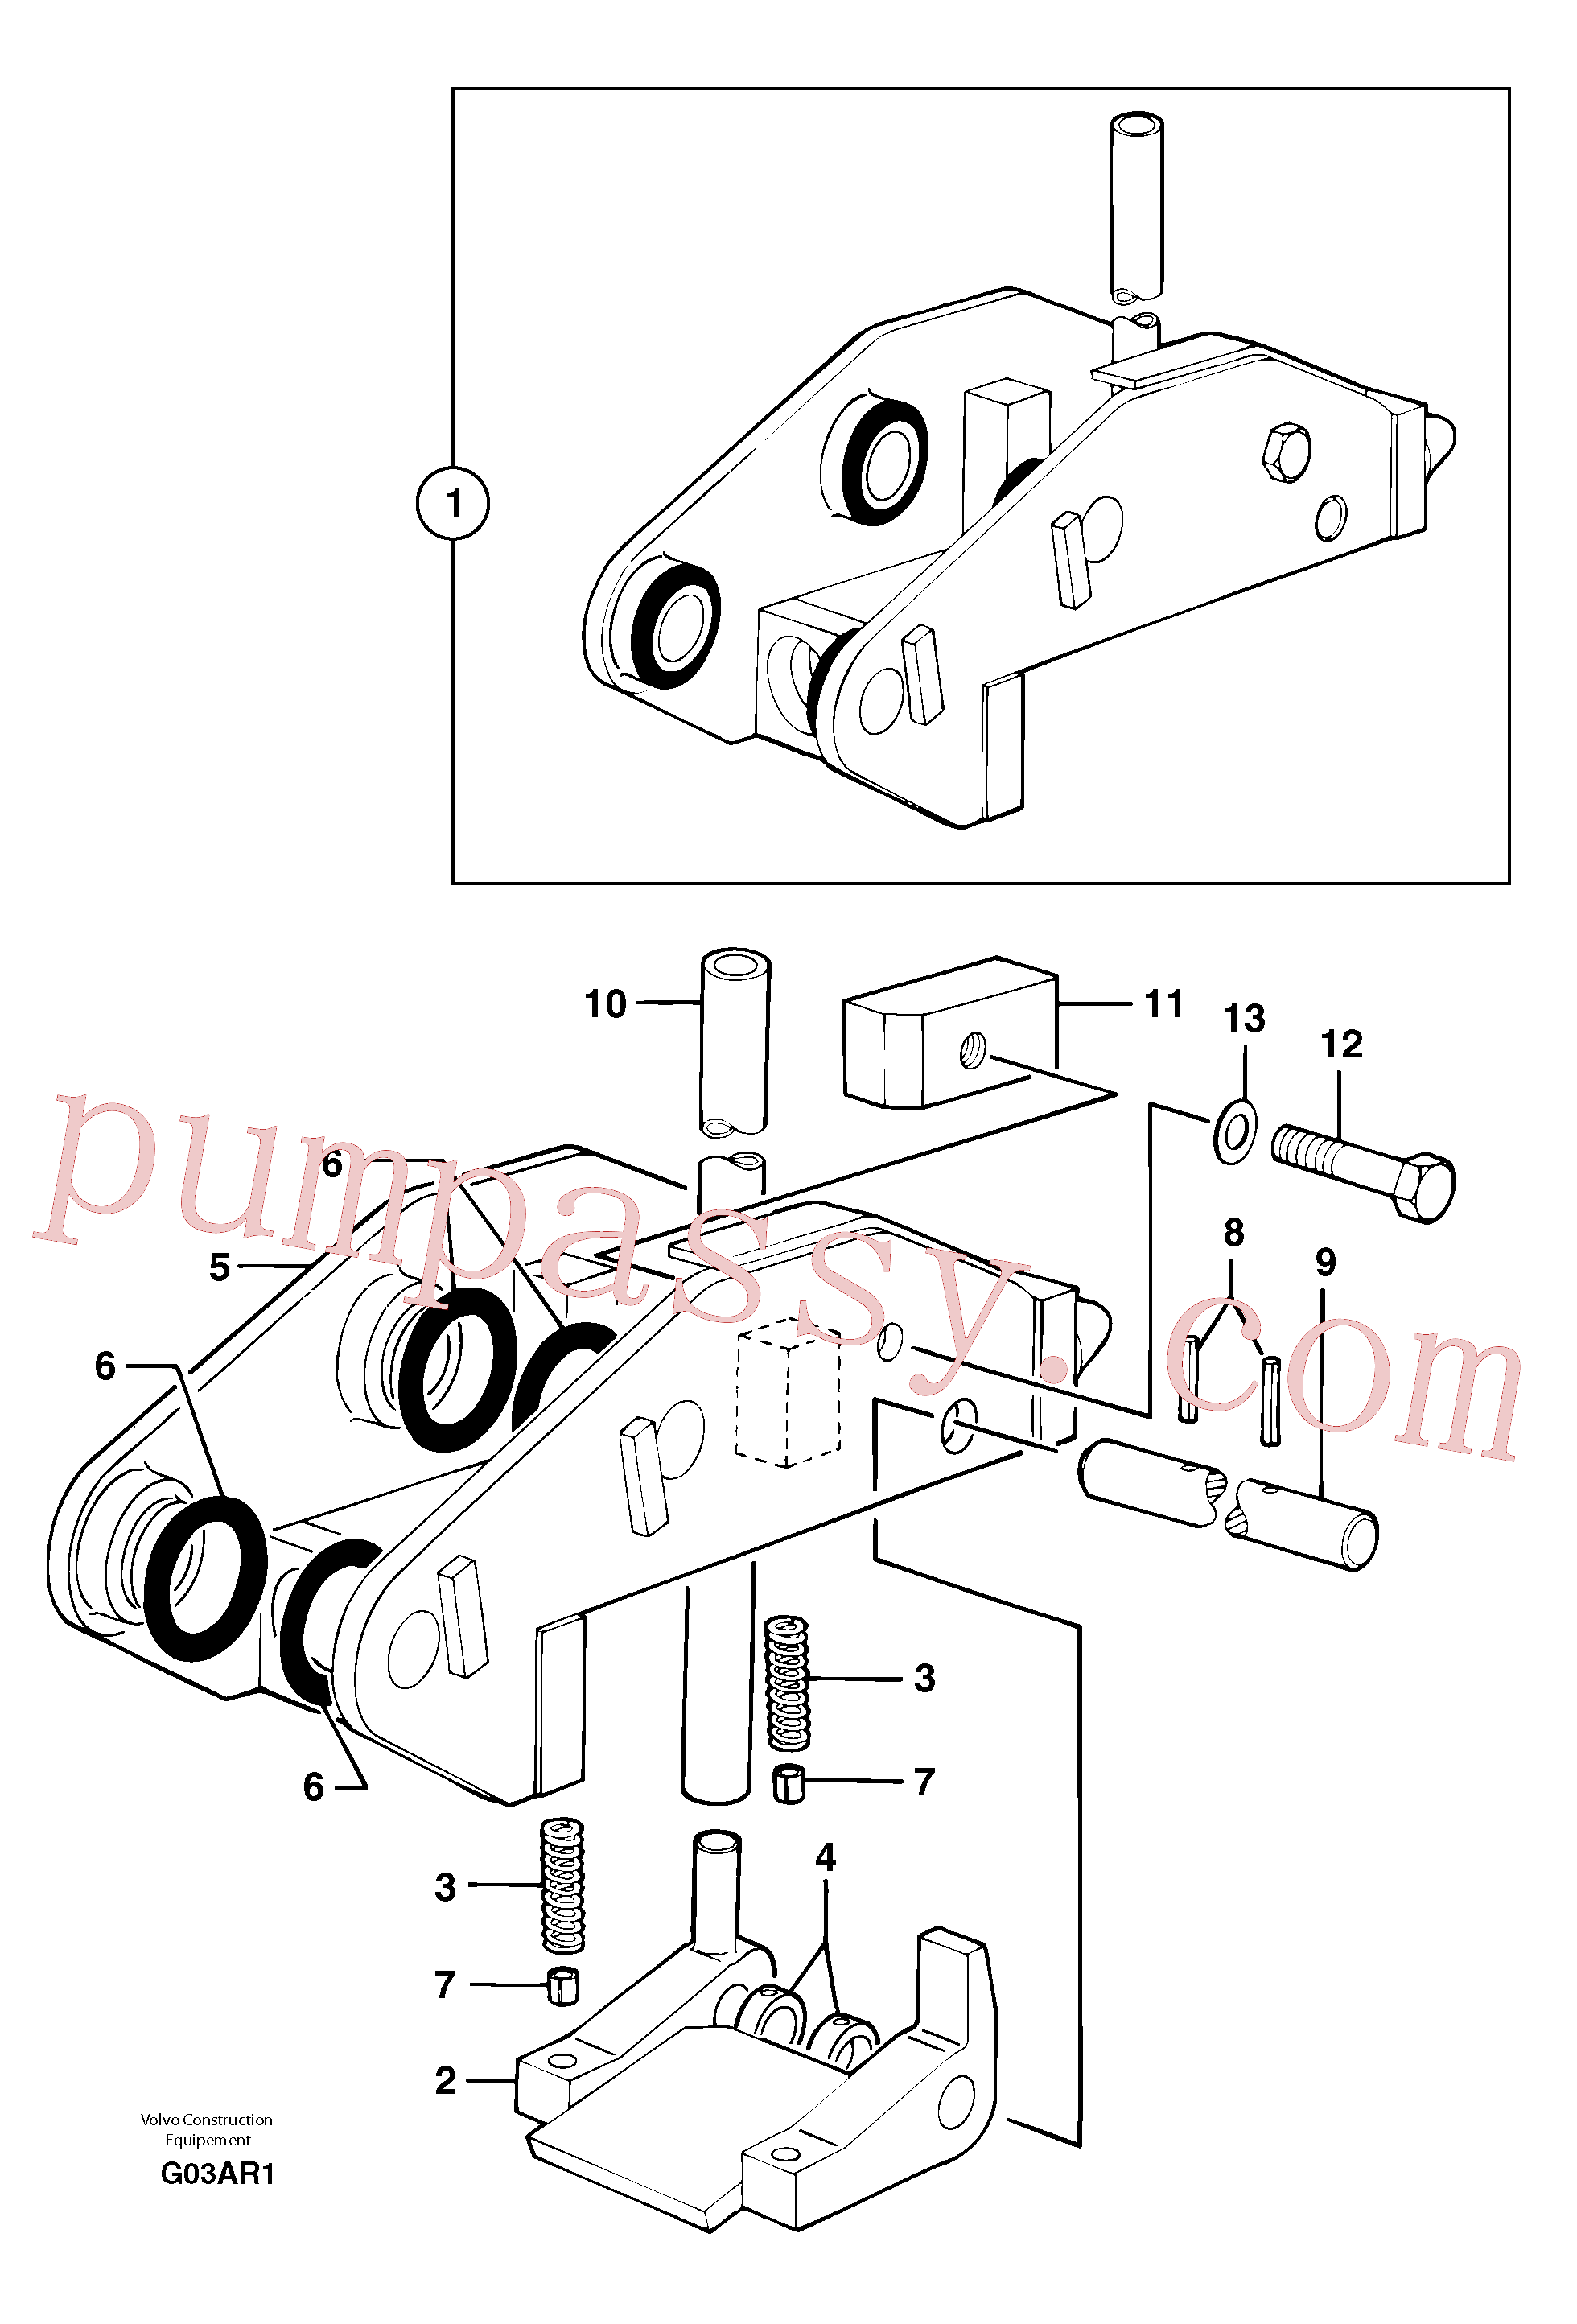 VOE11803844 for Volvo Tool holder / mechanical control(G03AR1 assembly)